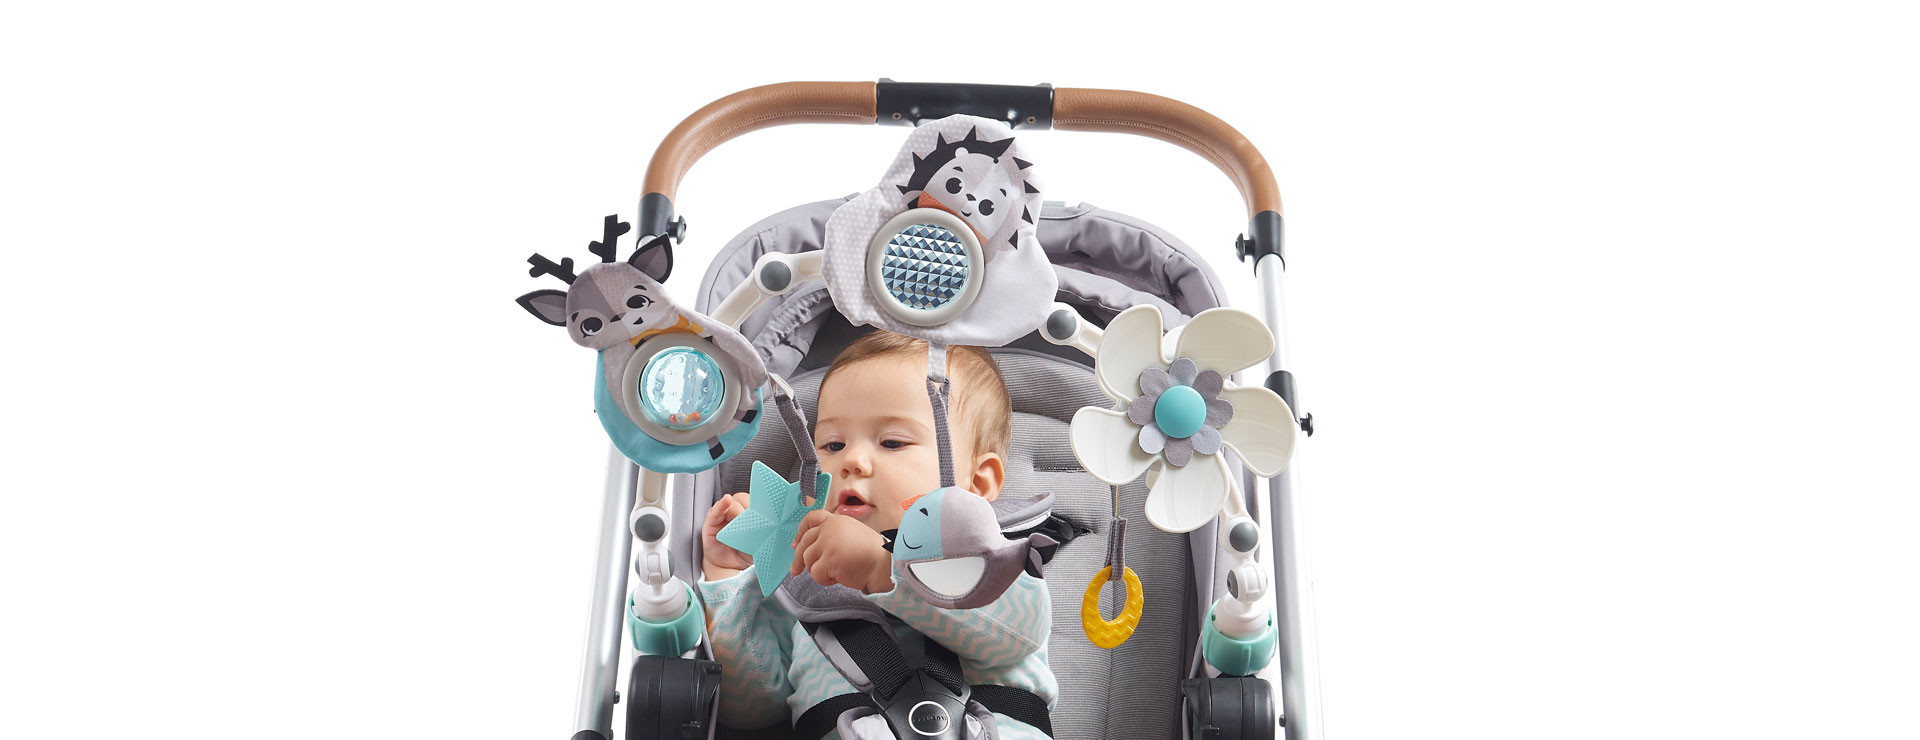 Rattles and smiling characters stimulate your baby's senses